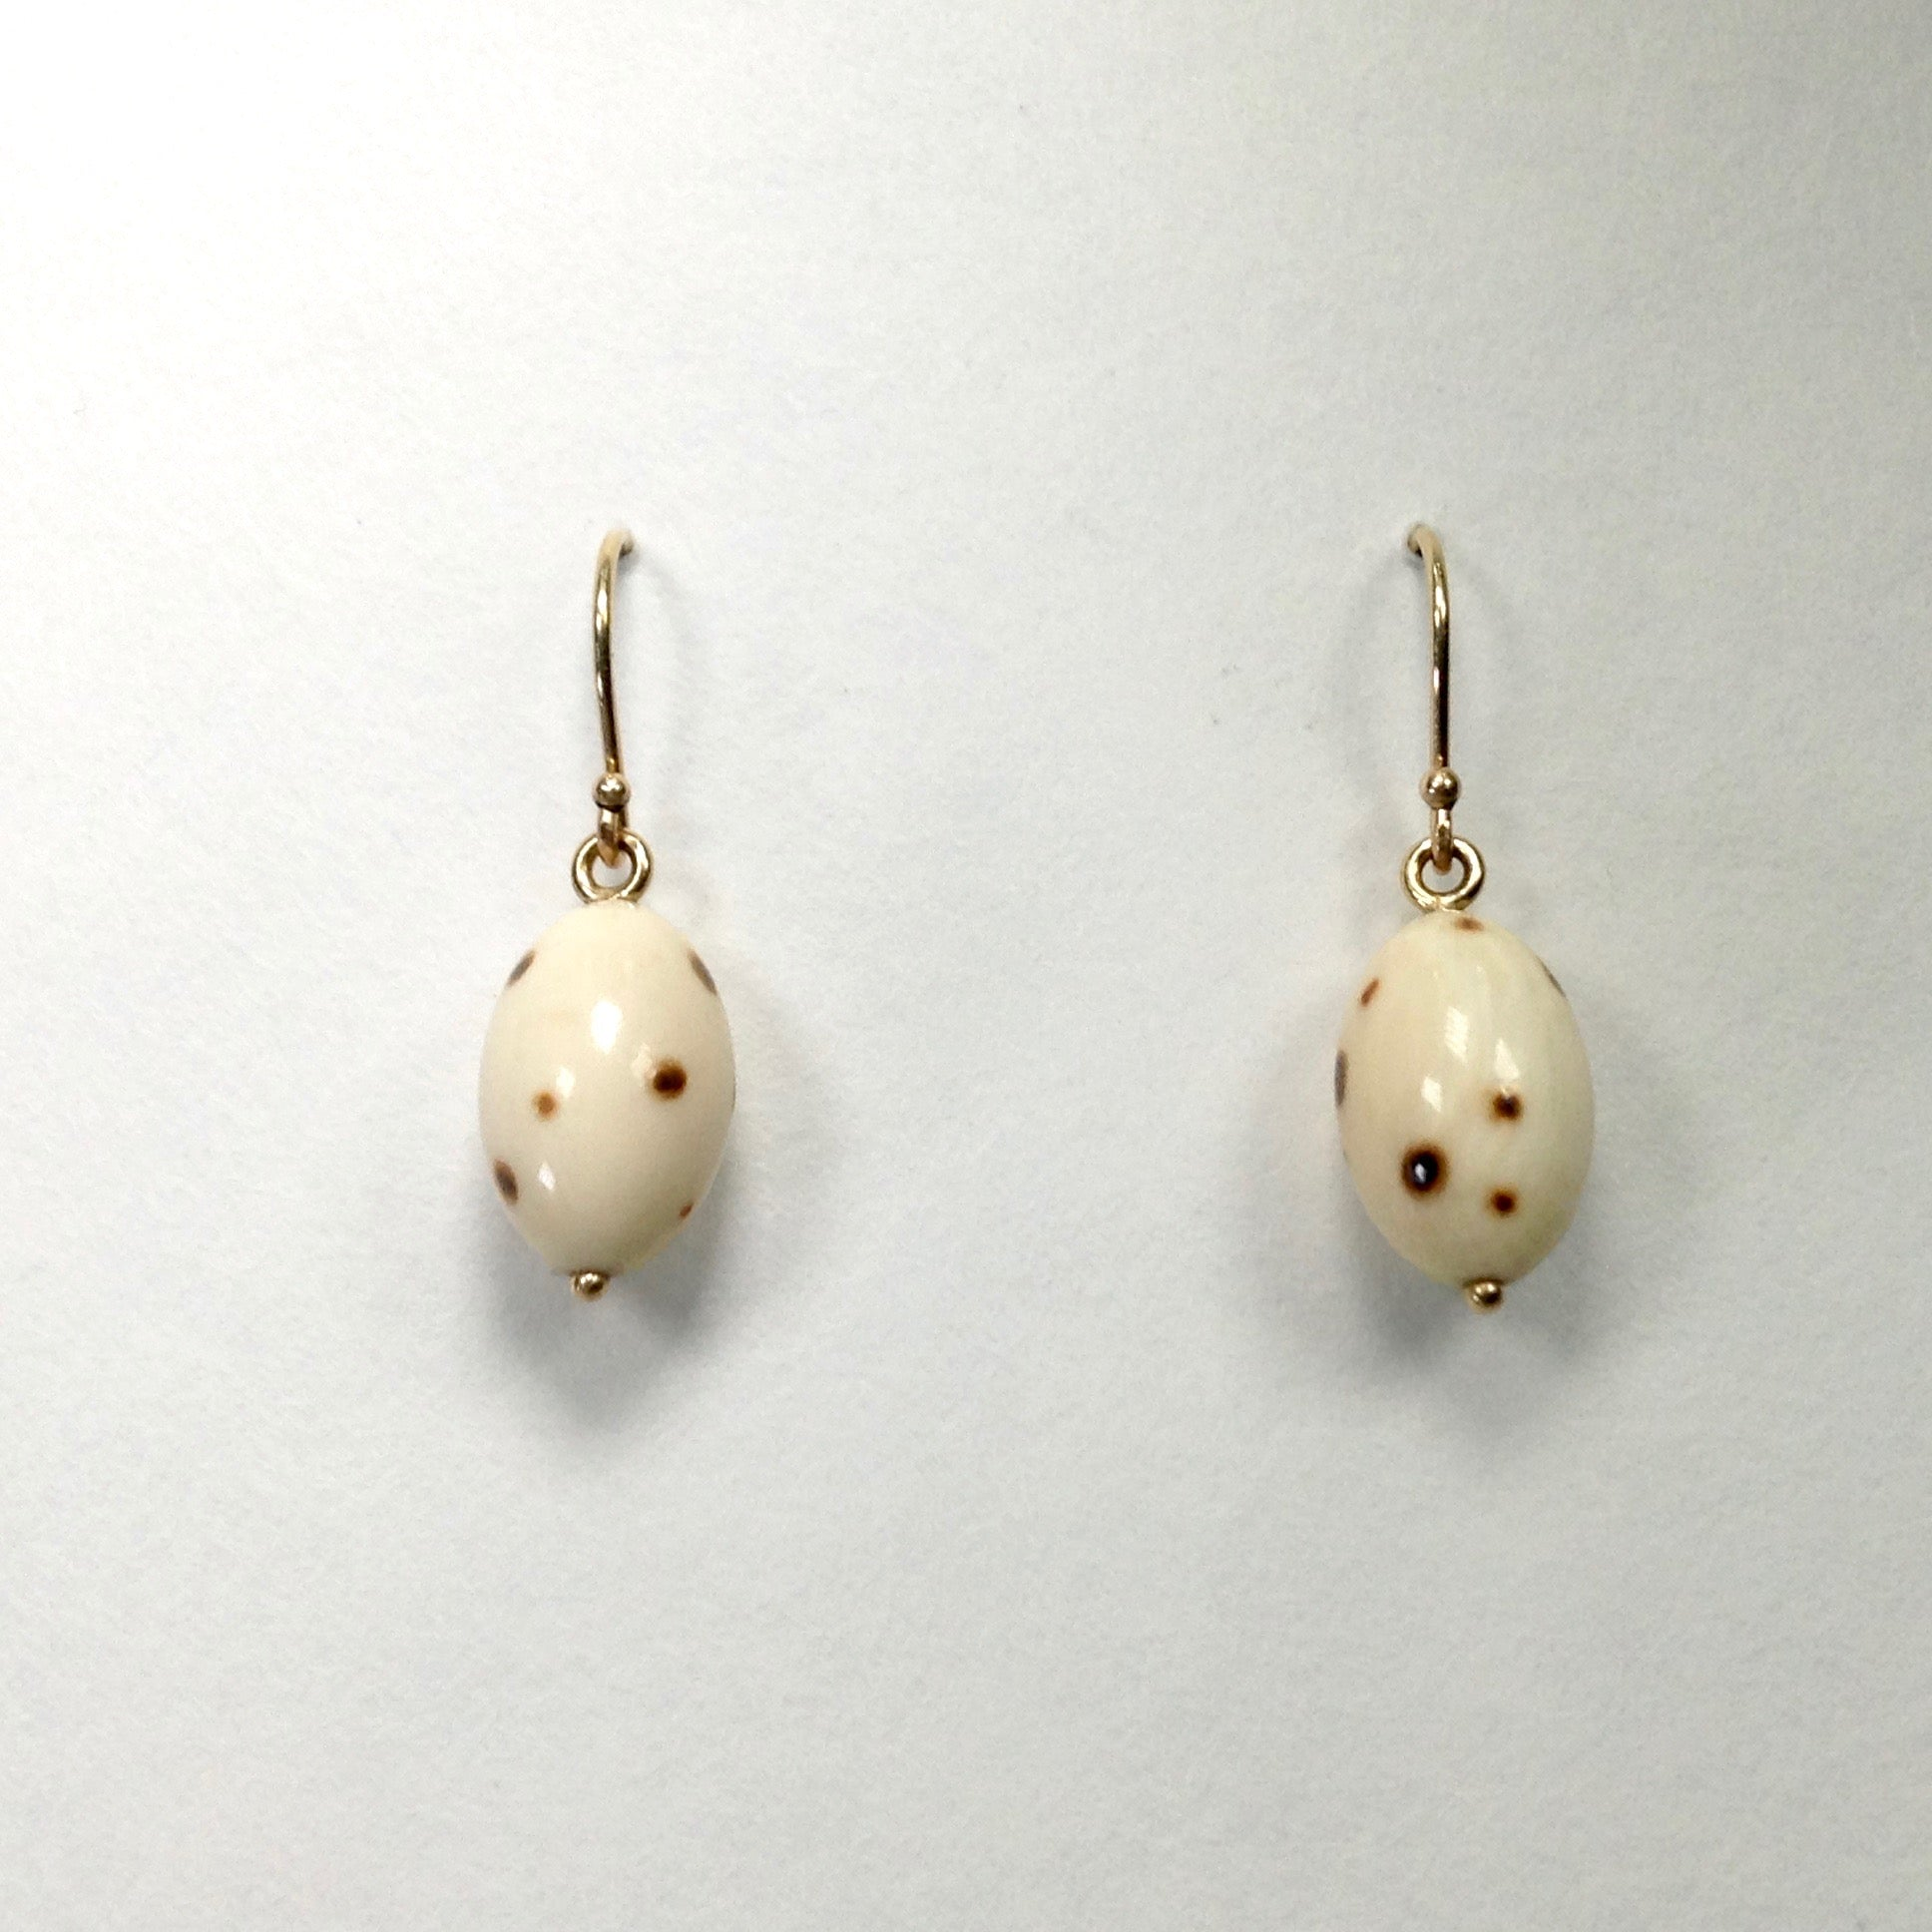 Annette Ferdinandsen Spotted Egg Earrings